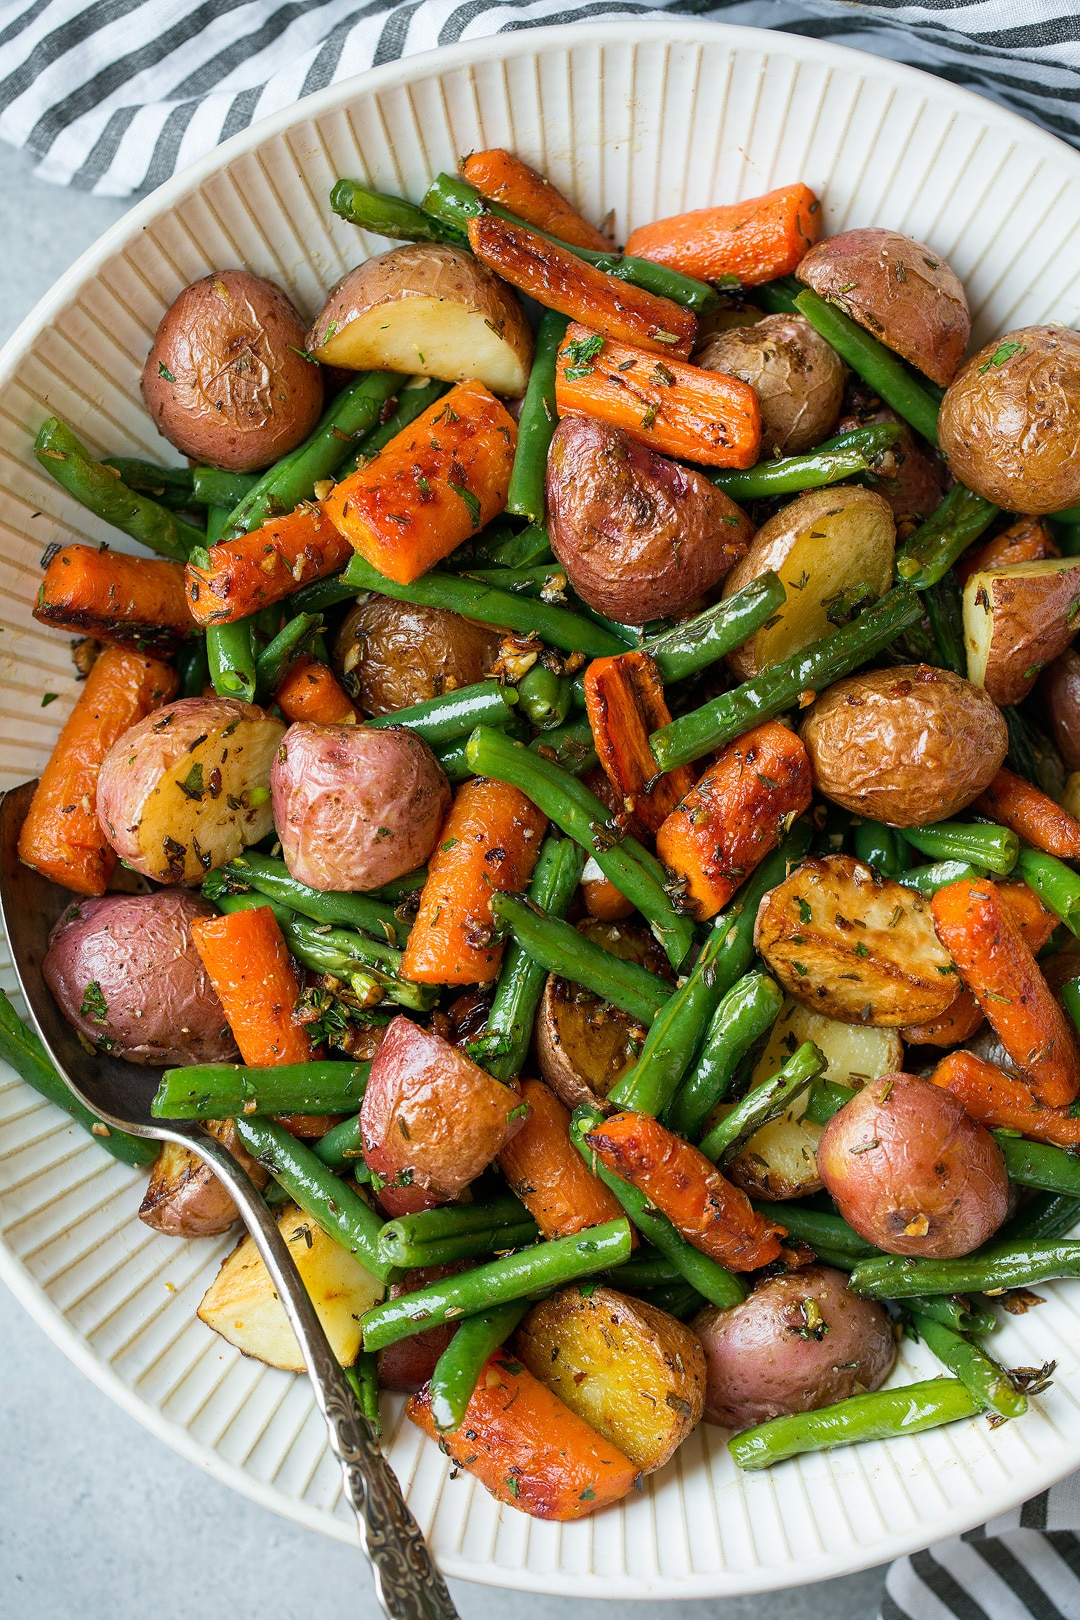 Roasted Vegetables including potatoes carrots and green beans with garlic herb seasoning.